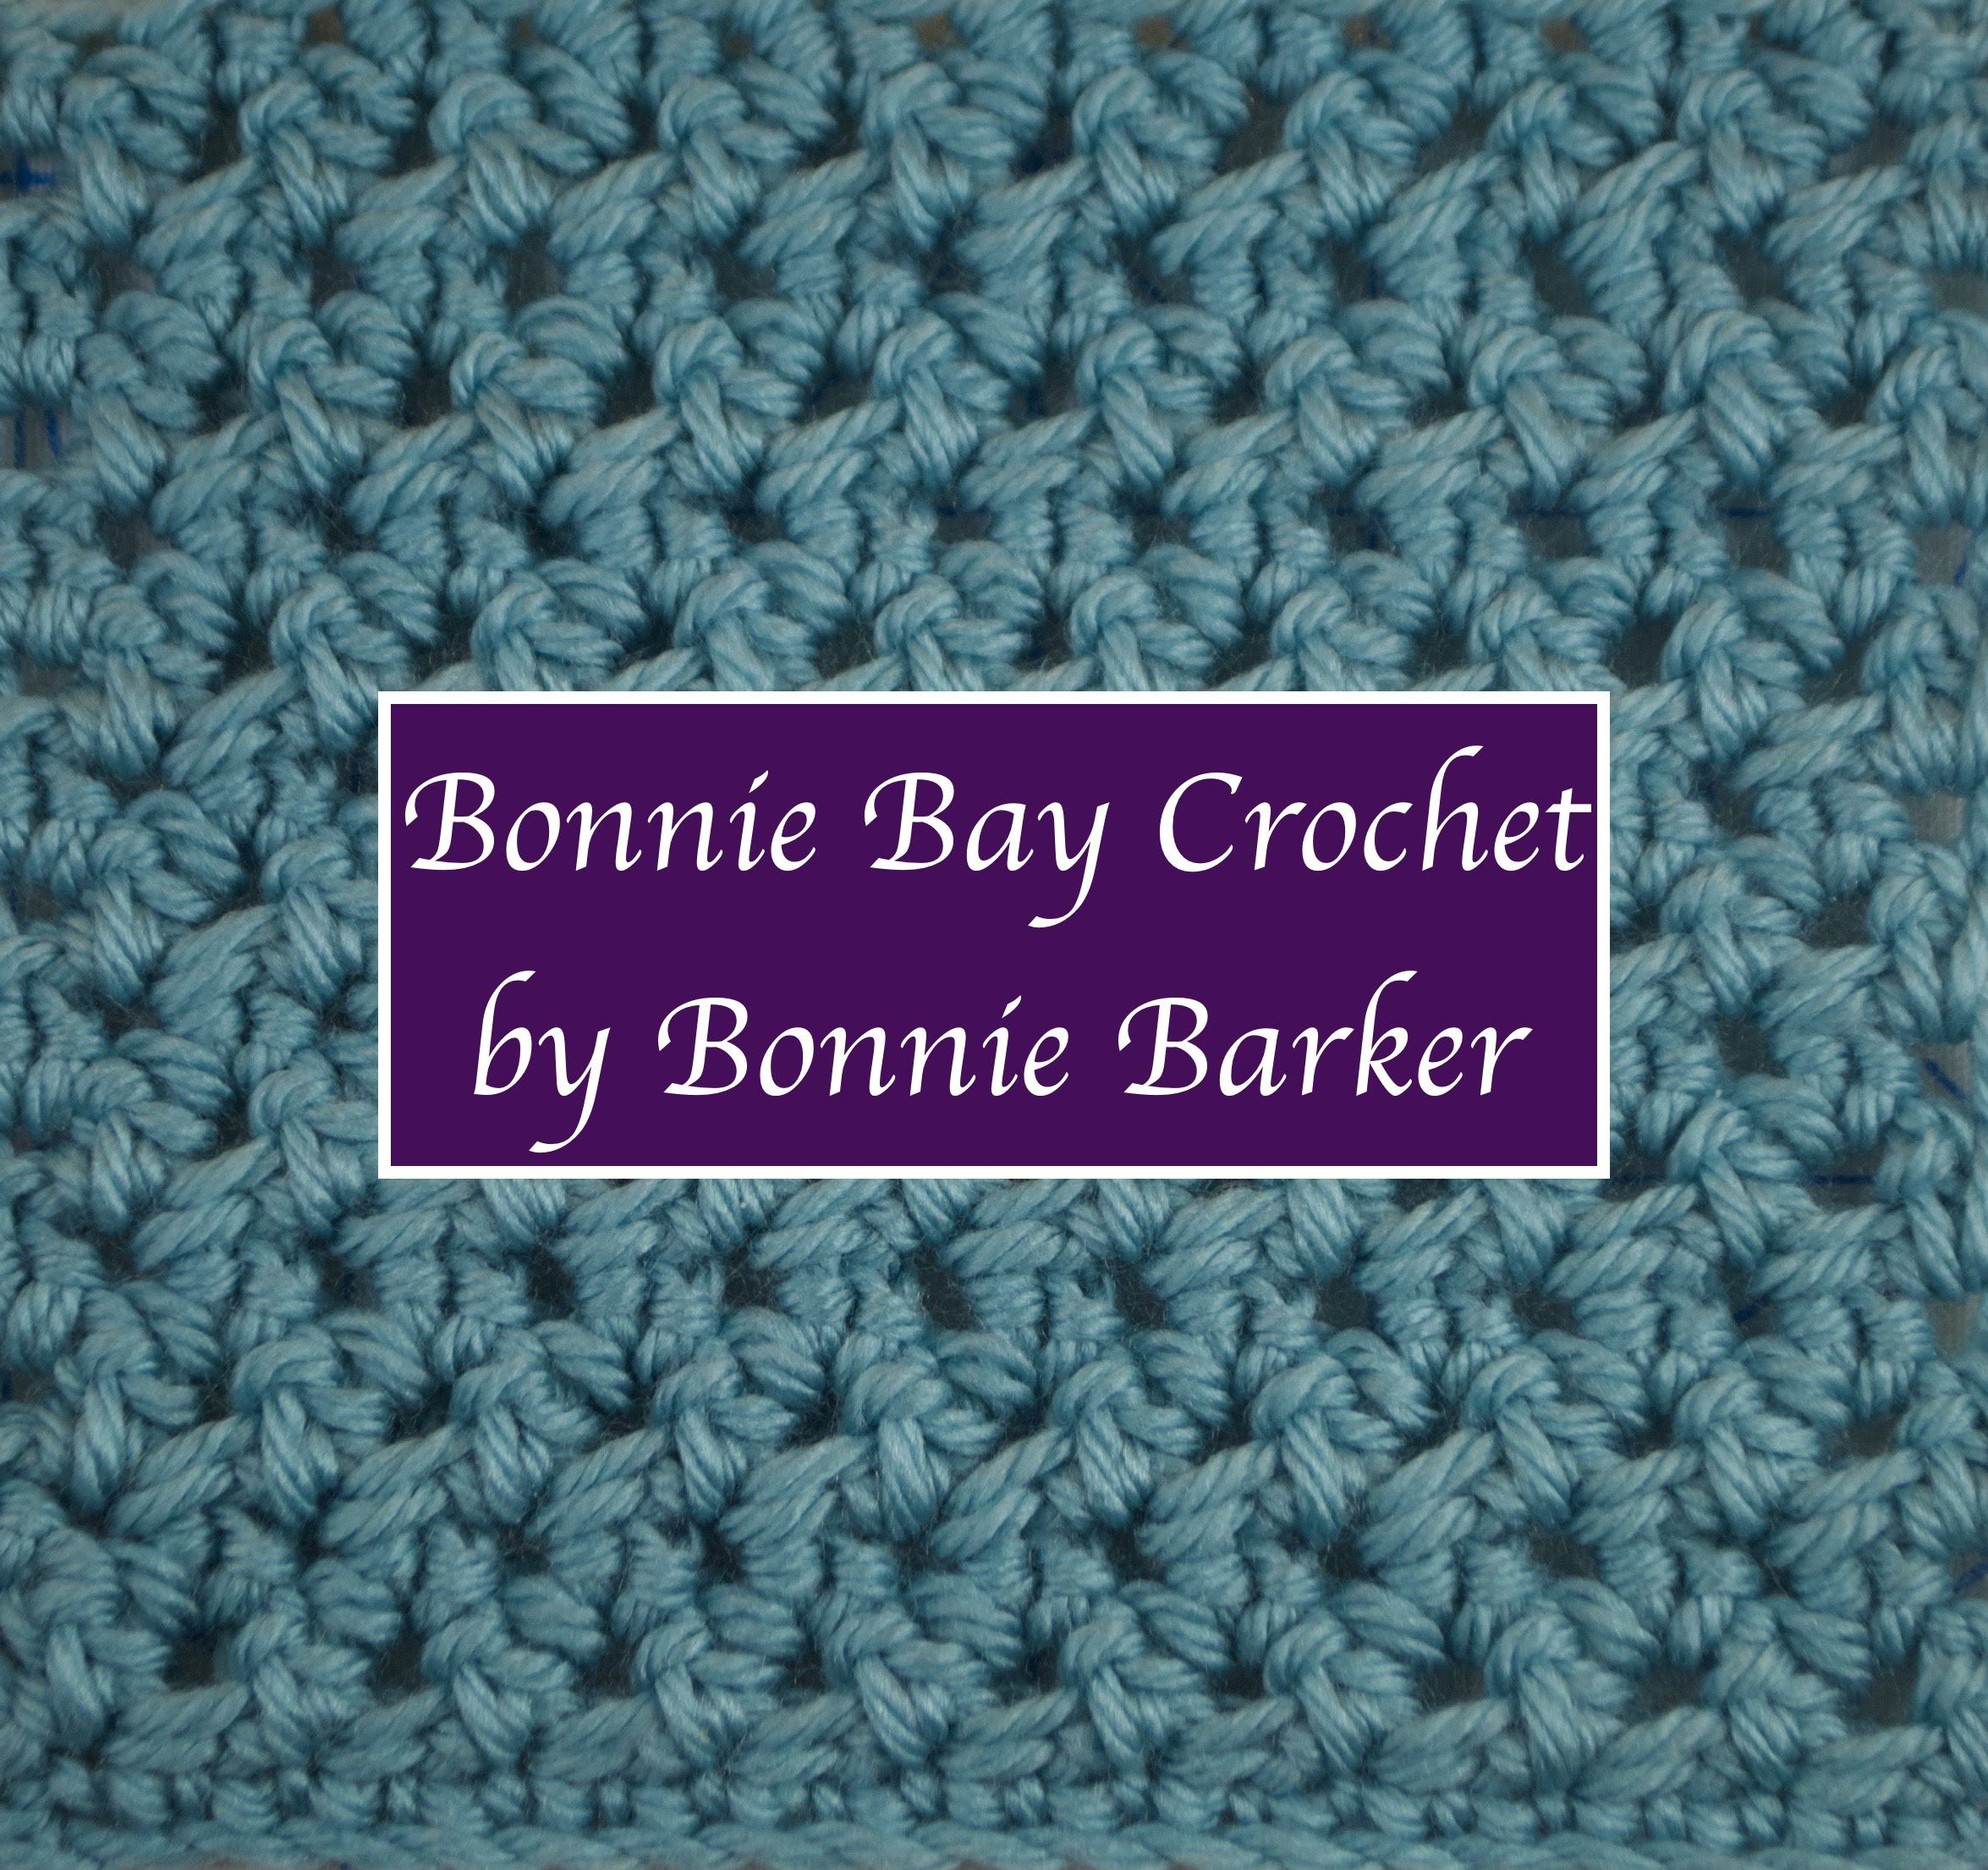 Bonnie Barker demonstrates how to crochet using the Woven Stitch ...